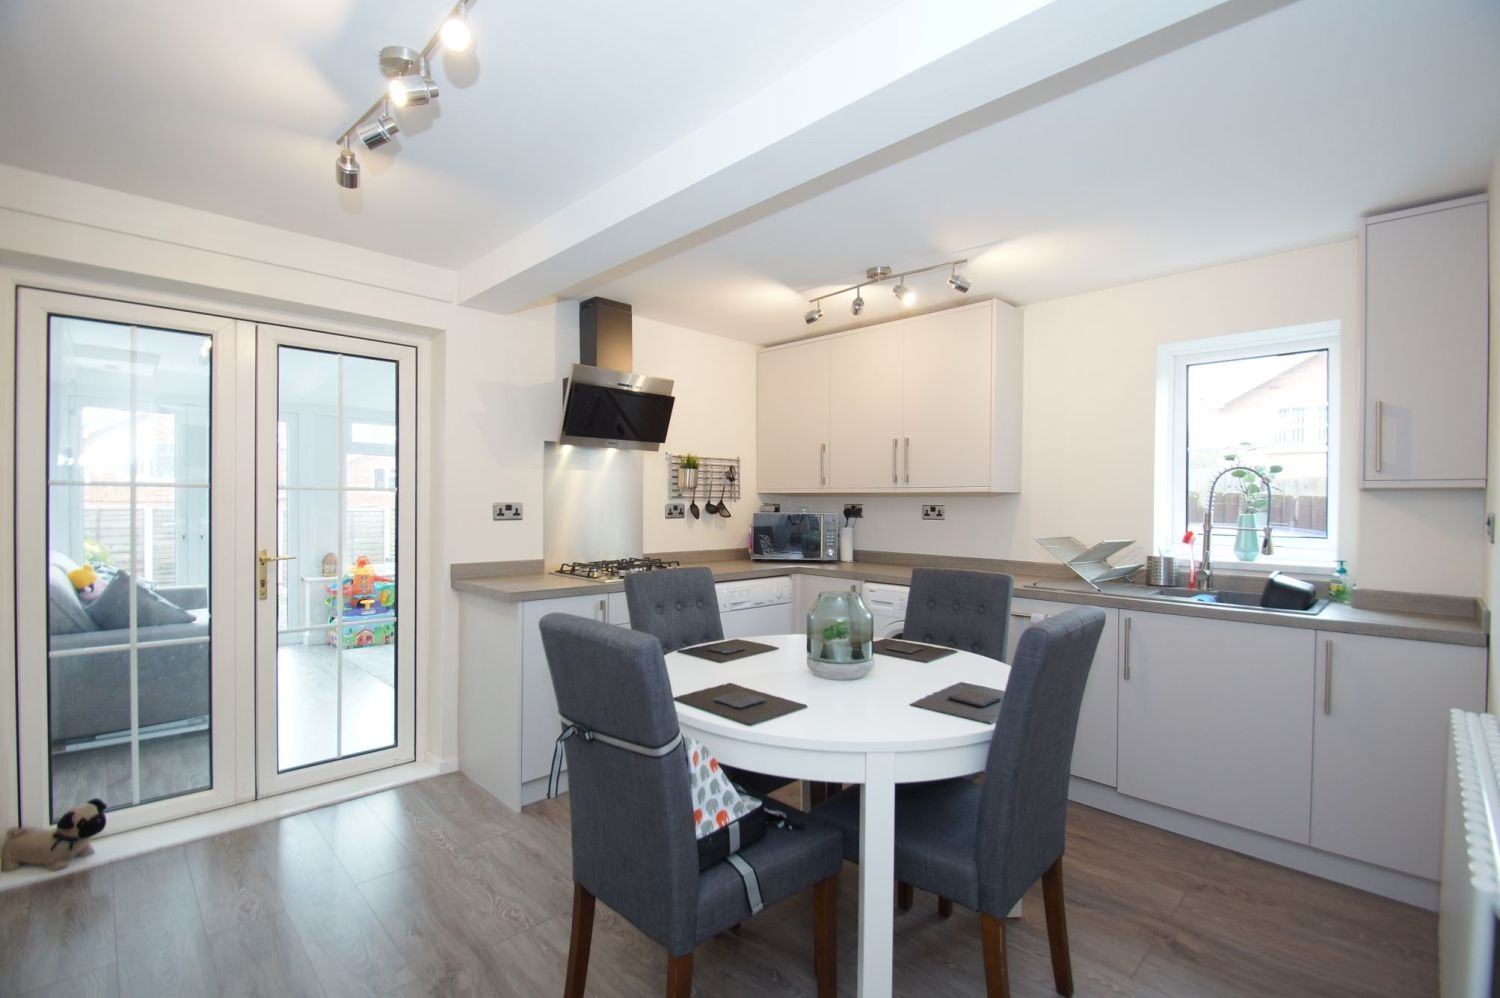 3 bed detached for sale in Painswick Close, Oakenshaw  - Property Image 3